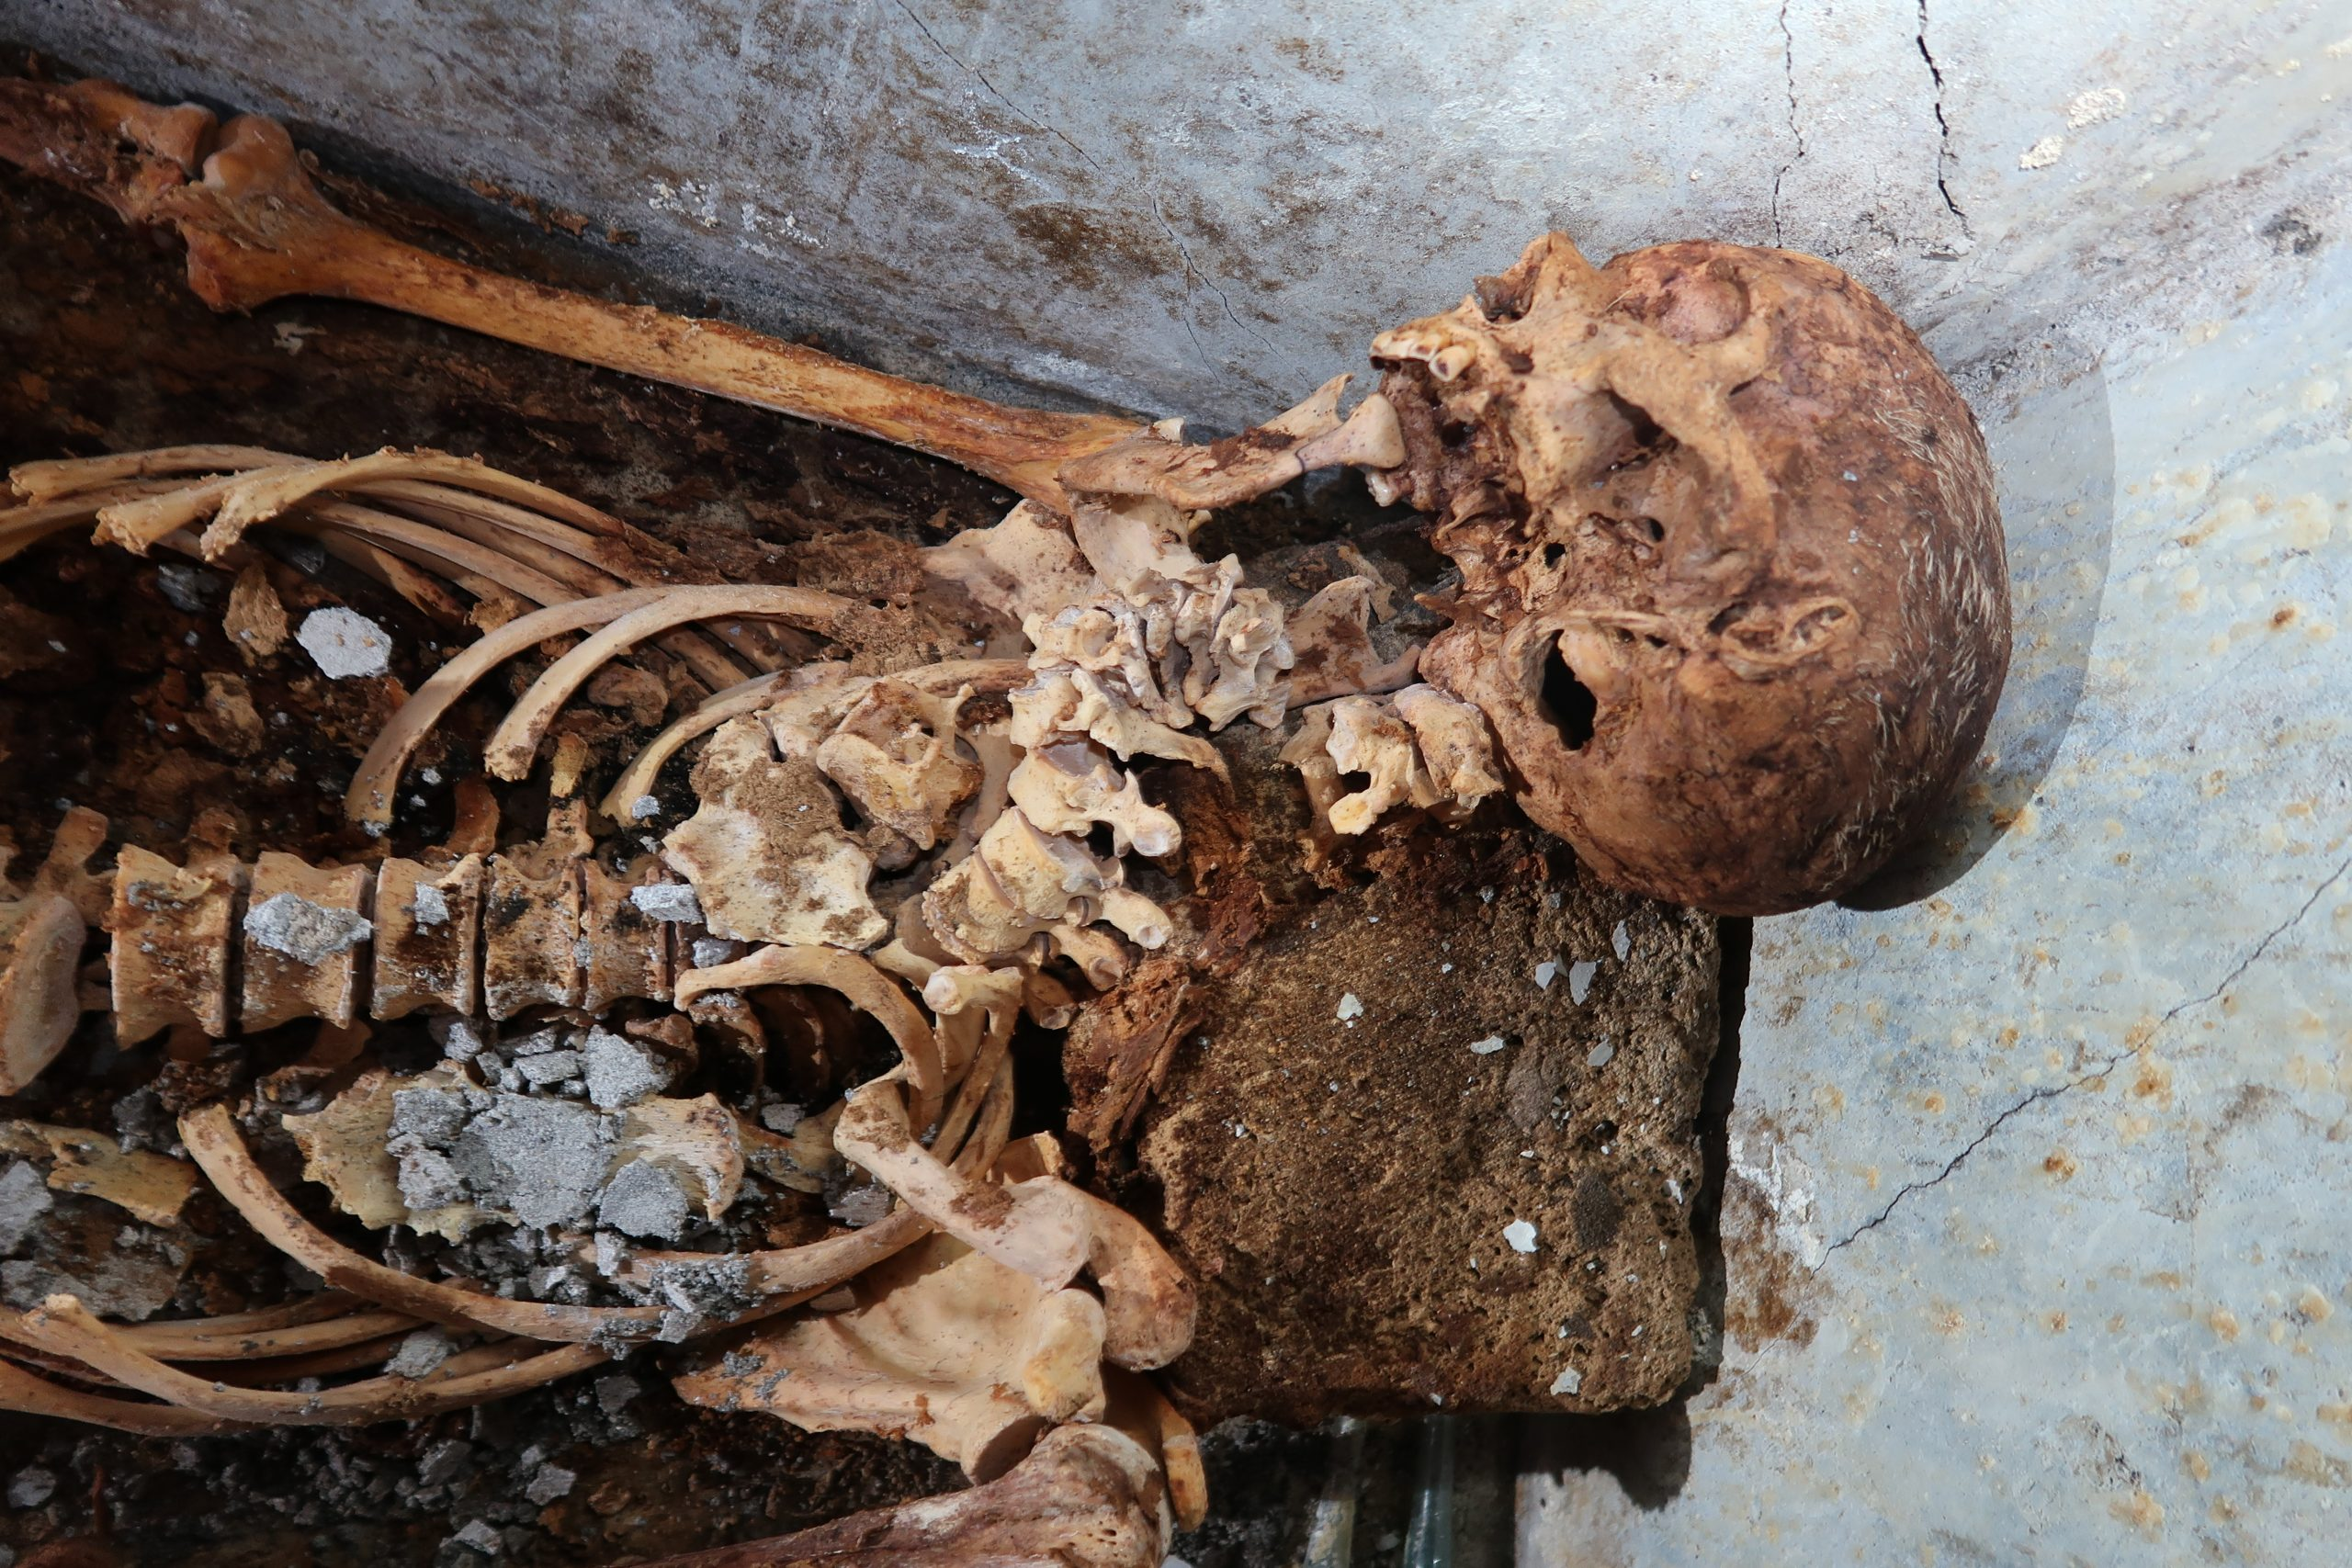 Archaeologists Discovered a Partially Mummified Skeleton That Proves Greek Theater Was Thriving in Roman Pompeii | Artnet News